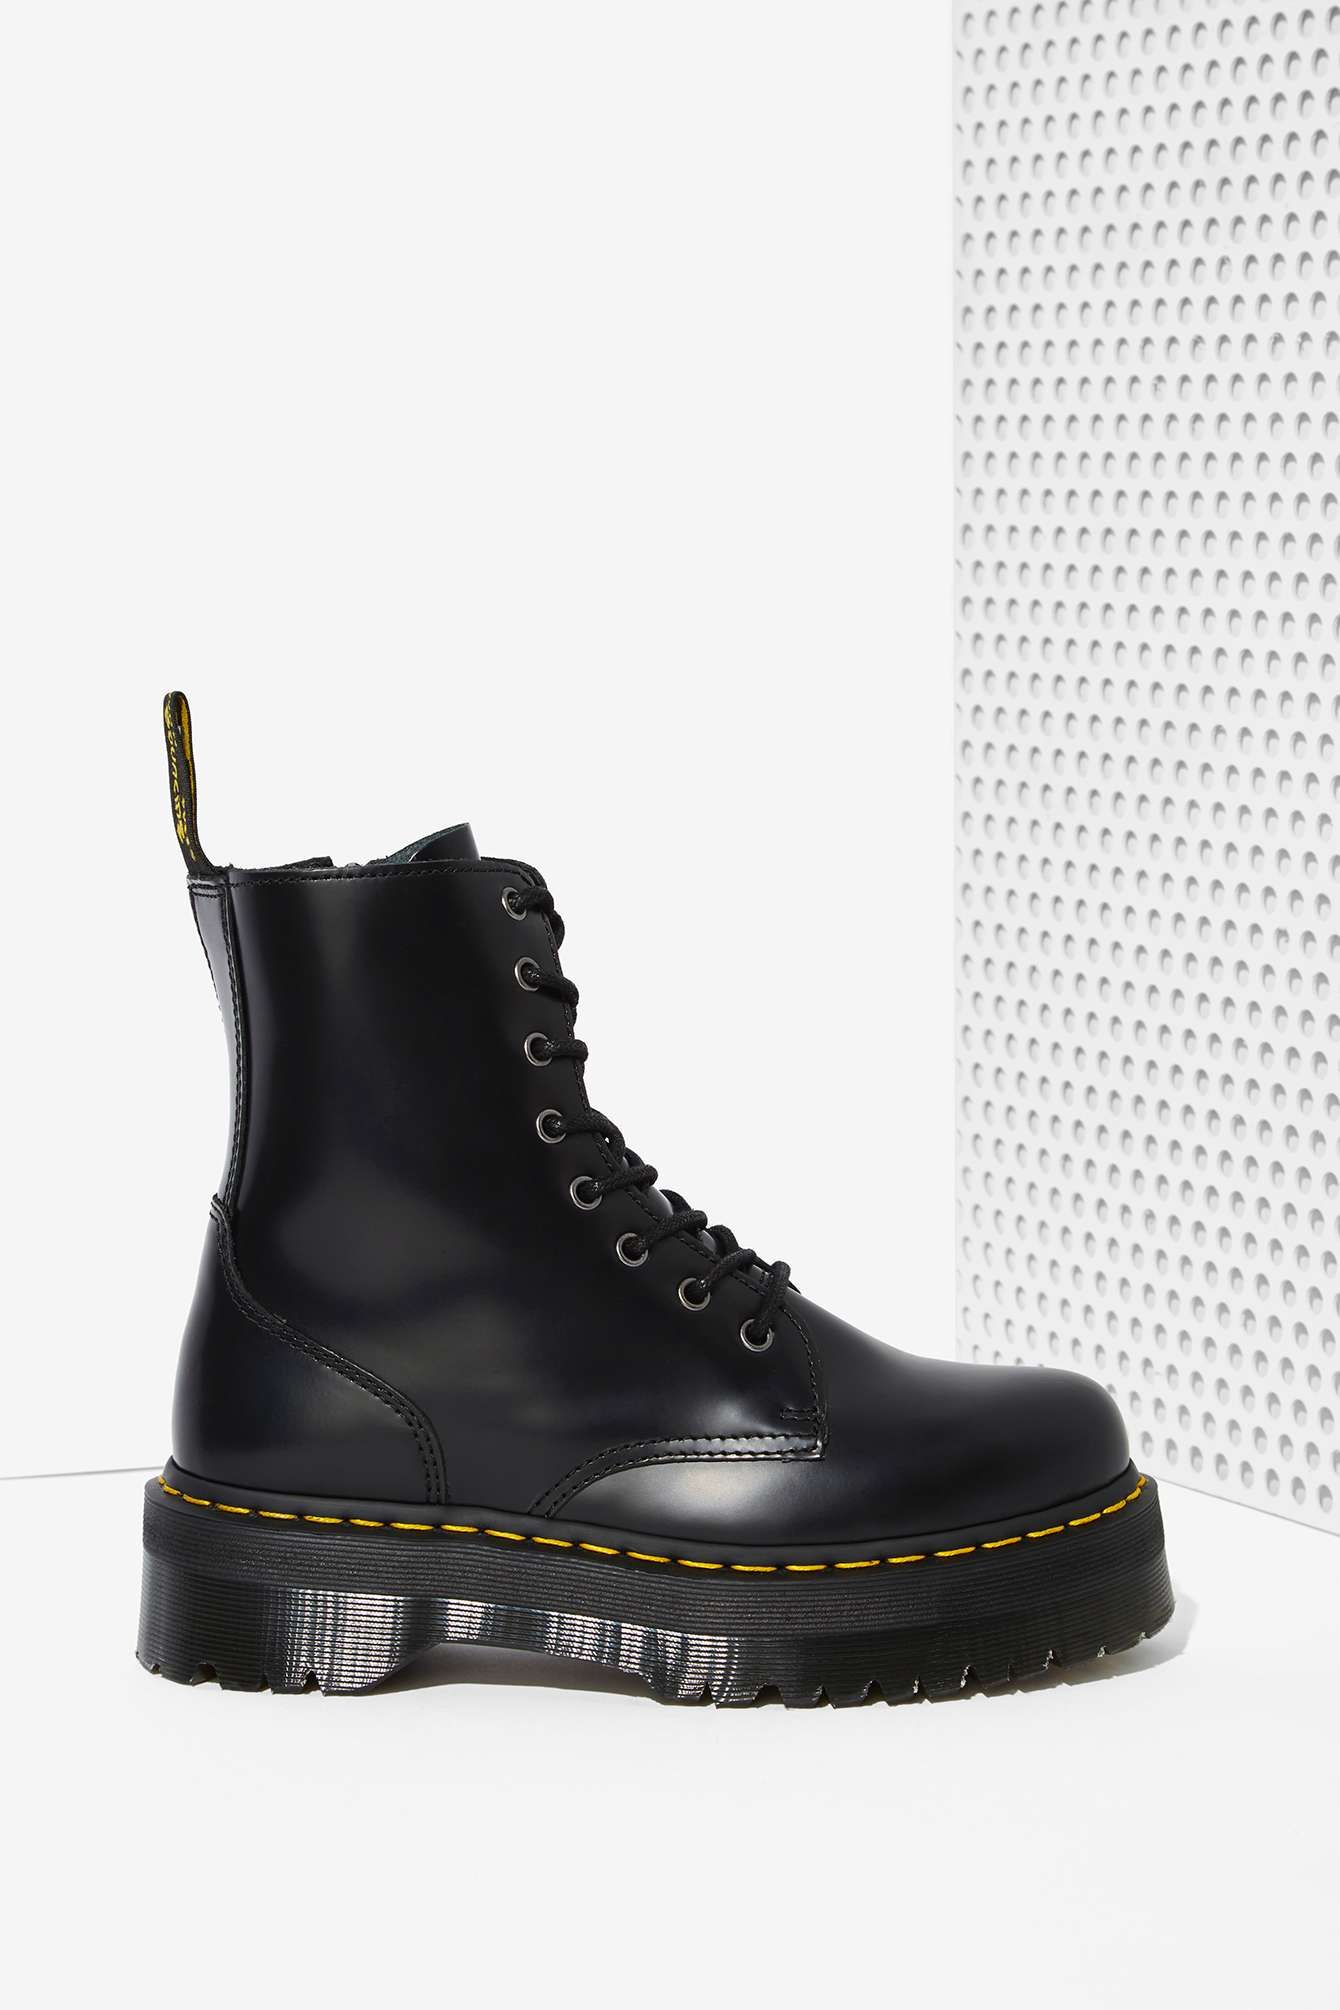 ef62647e62 Dr. Martens Jadon 8-Eye Leather Boot | Thanks, It's New in 2019 ...